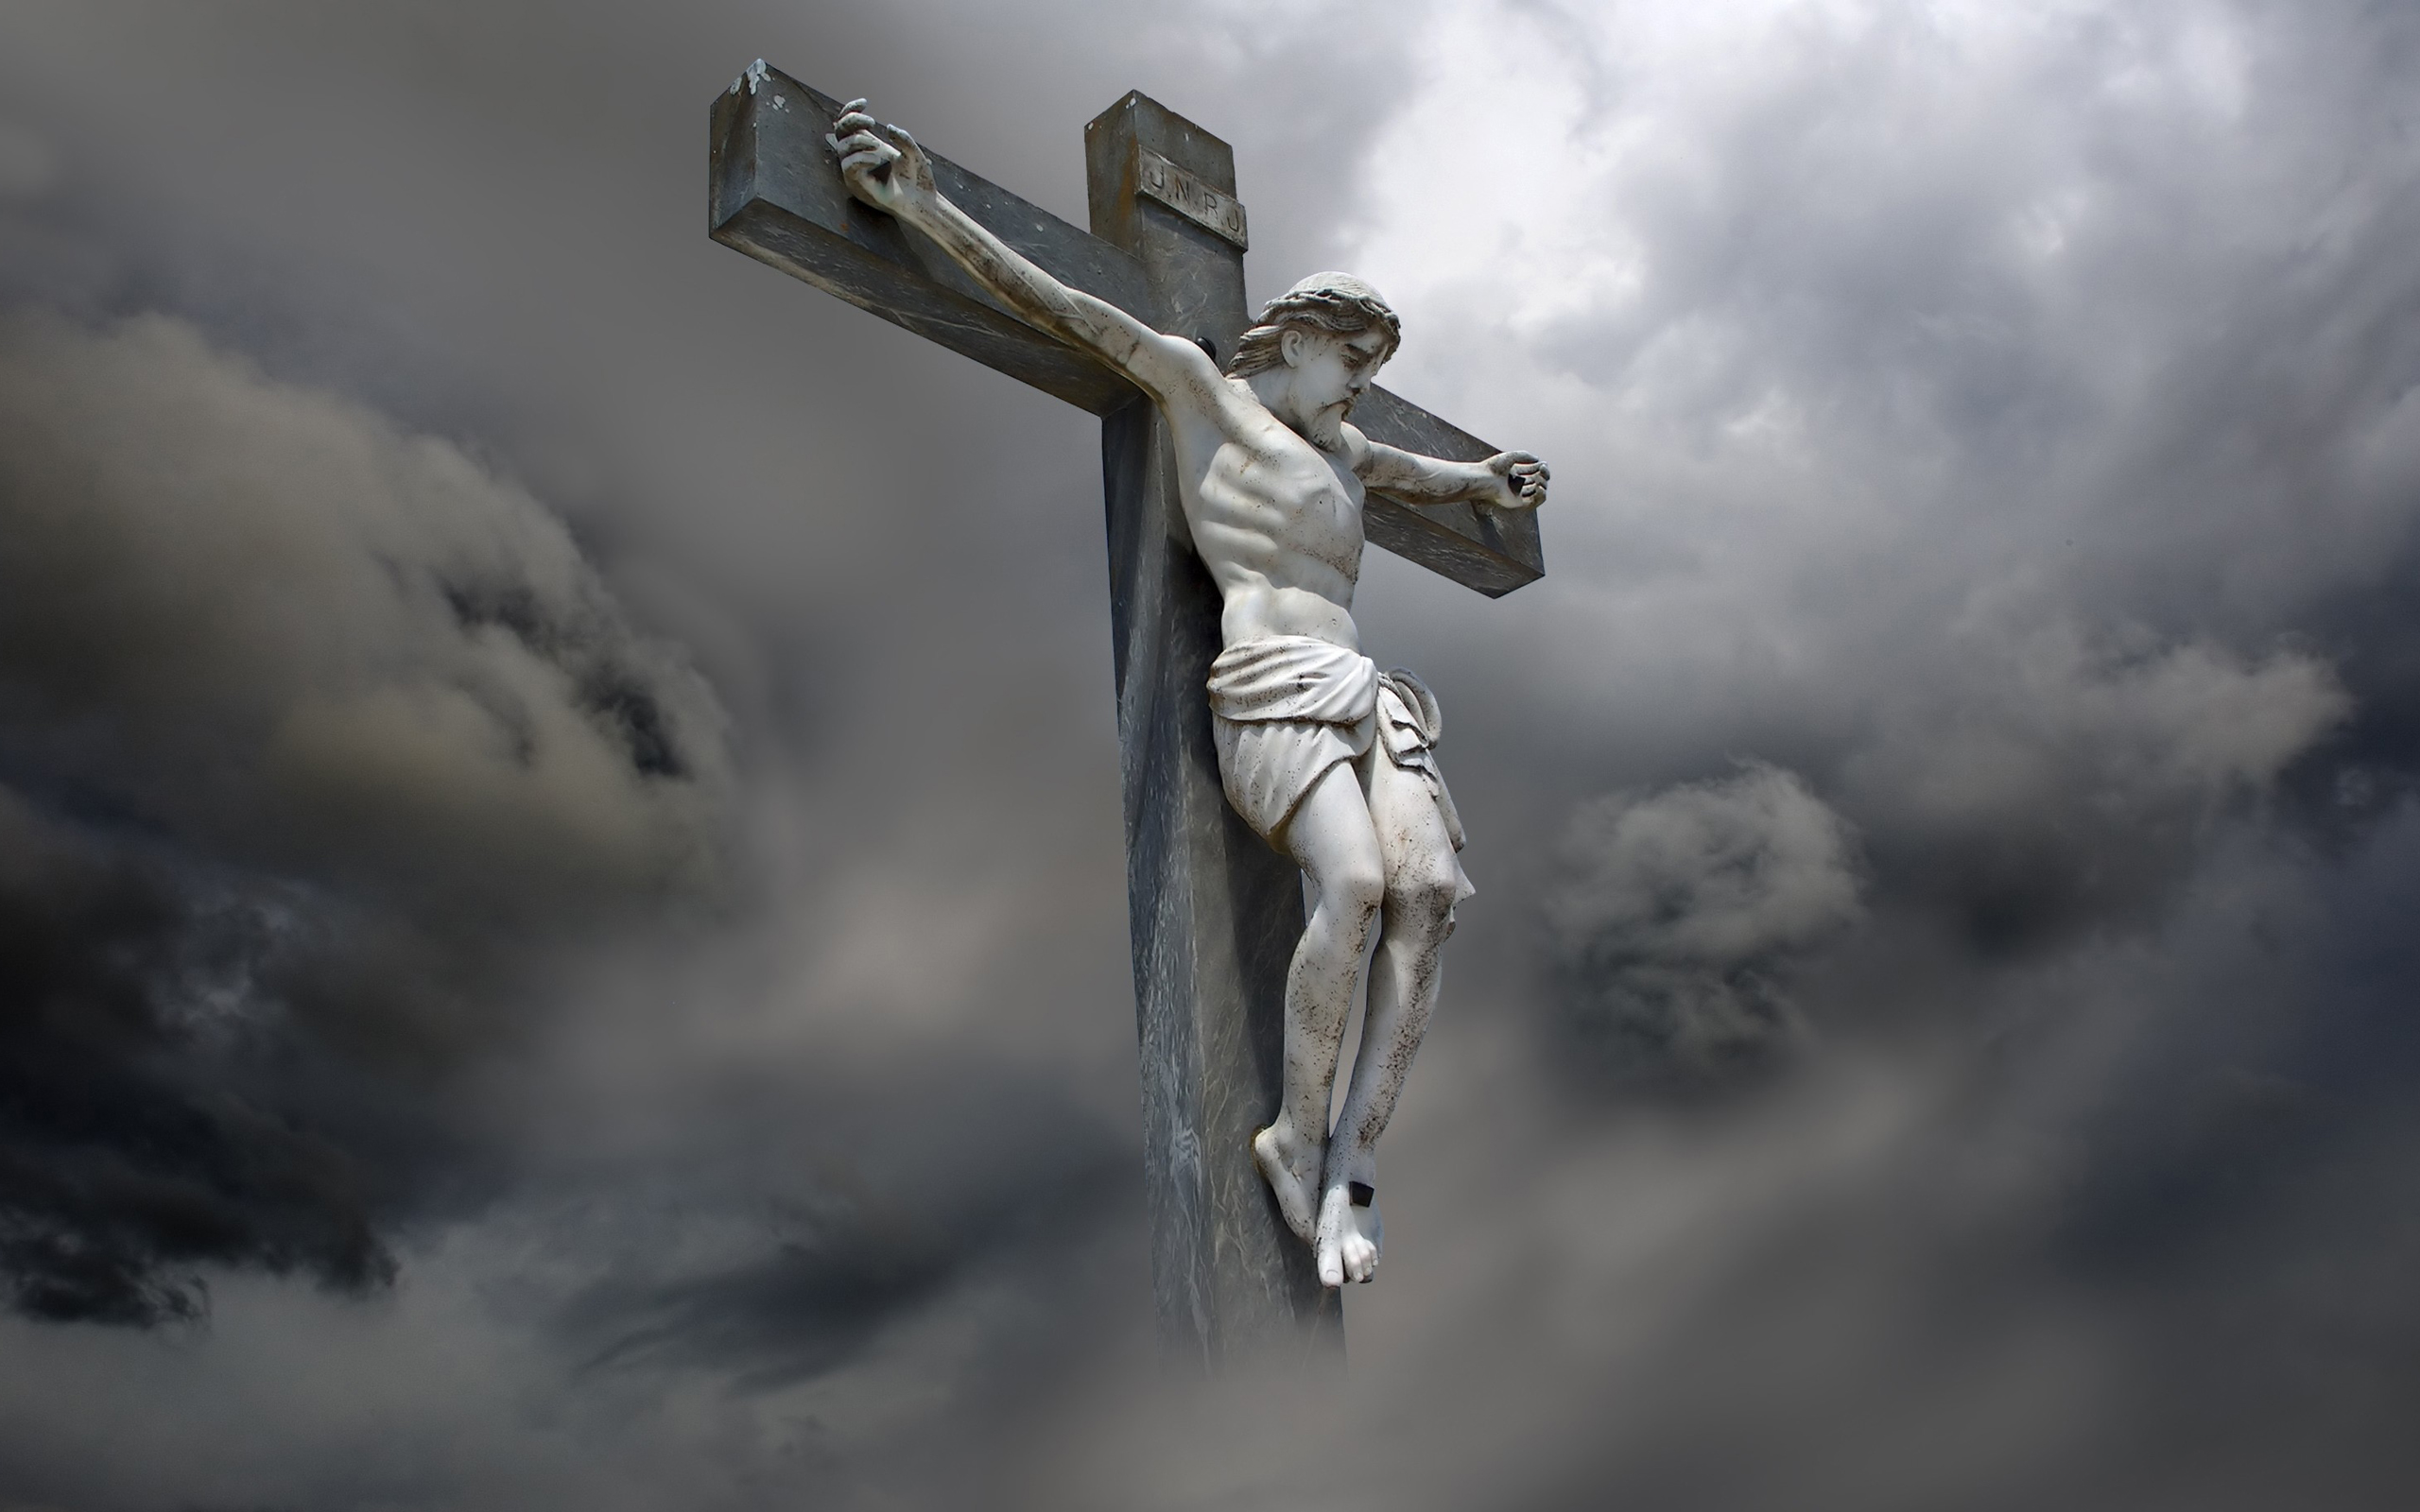 Jesus-christ-death-cross-wide-background